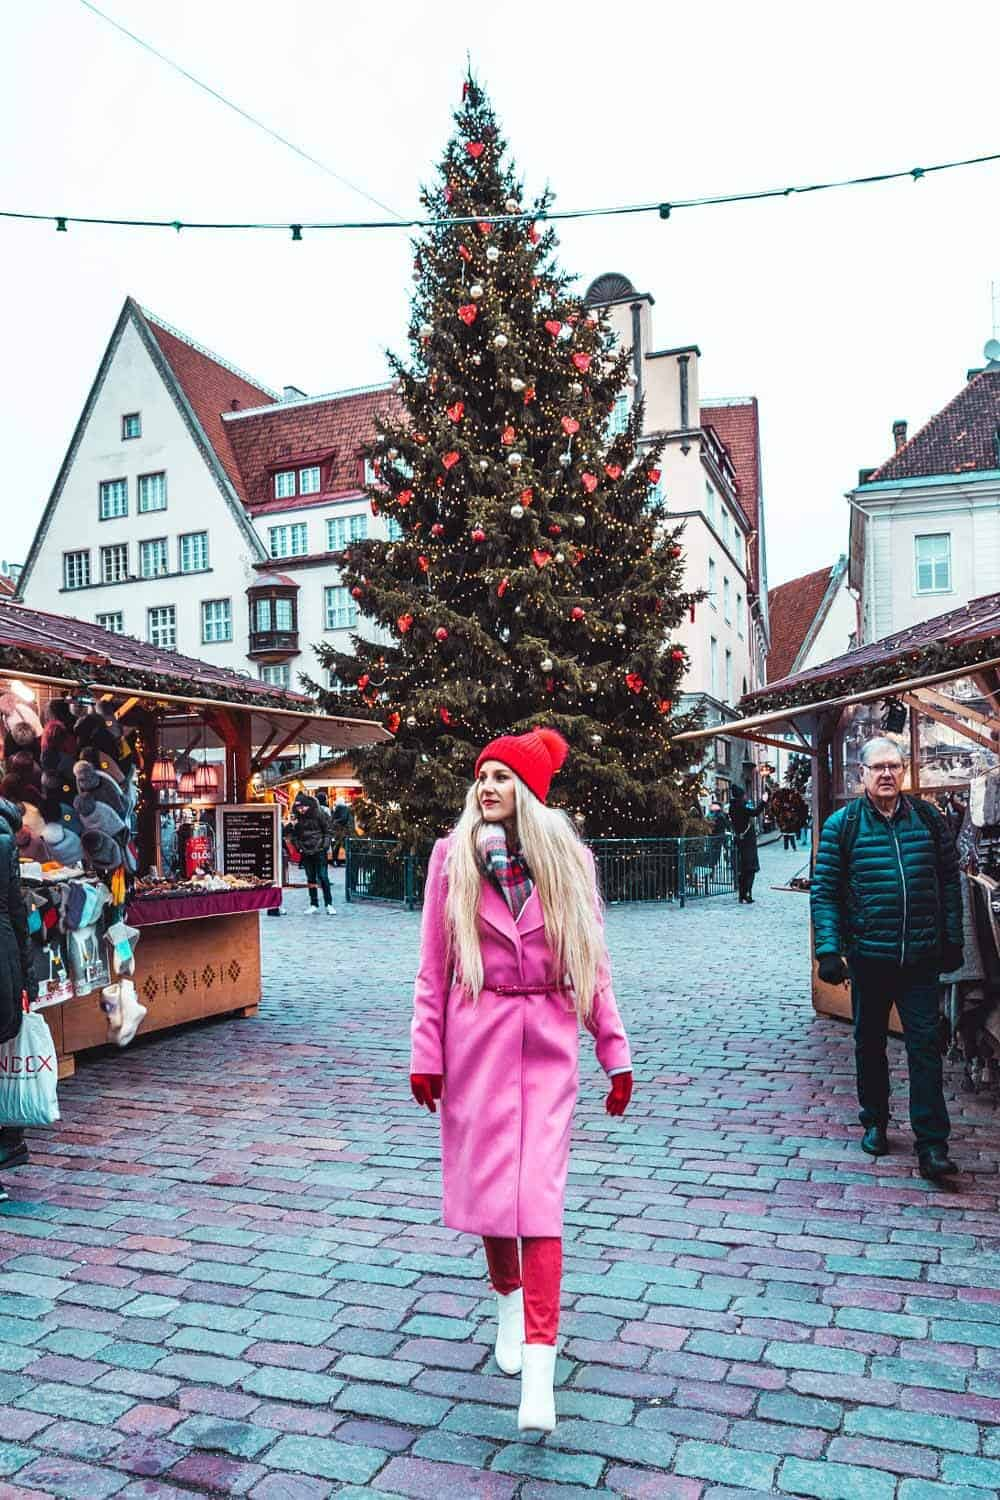 Tallinn Christmas Market at Raekoja Plats. Best things to do in Tallinn Estonia! If you are planning on traveling to Europe you need to check out Tallinn. It is one of the most beautiful cities in Europe.